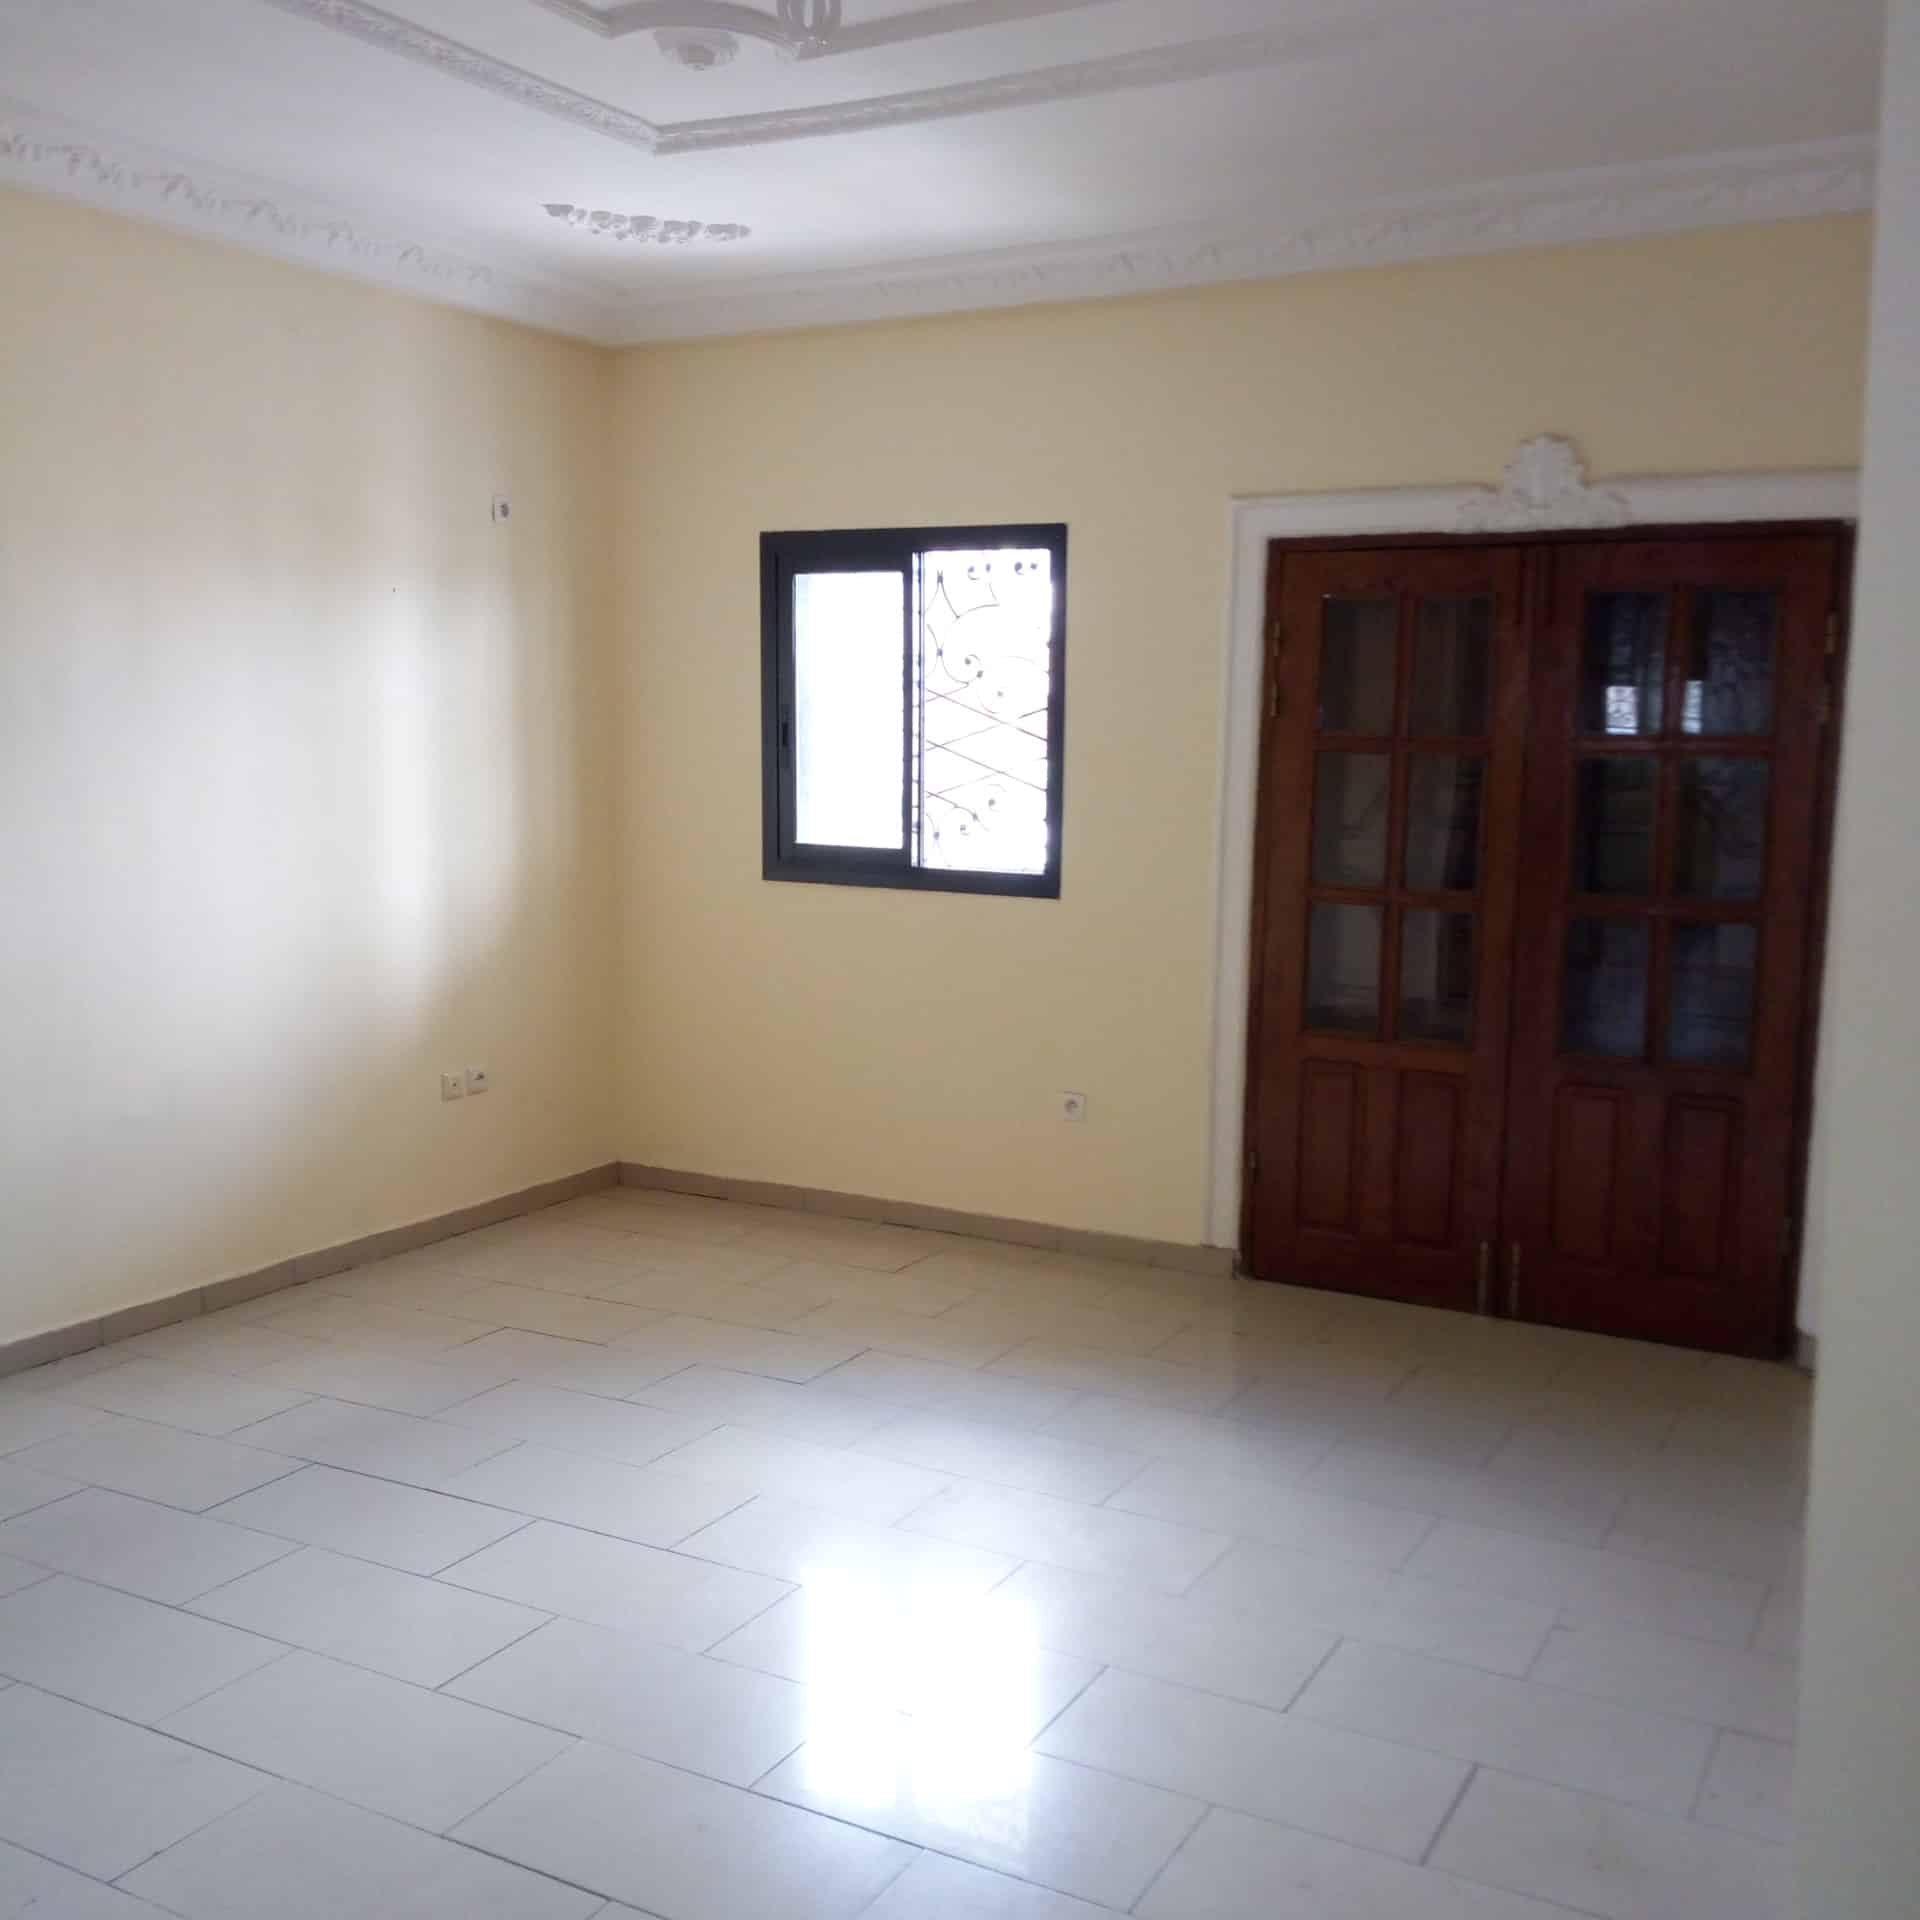 Apartment to rent - Douala, Logpom, Ver carrefour express - 1 living room(s), 1 bedroom(s), 1 bathroom(s) - 100 000 FCFA / month